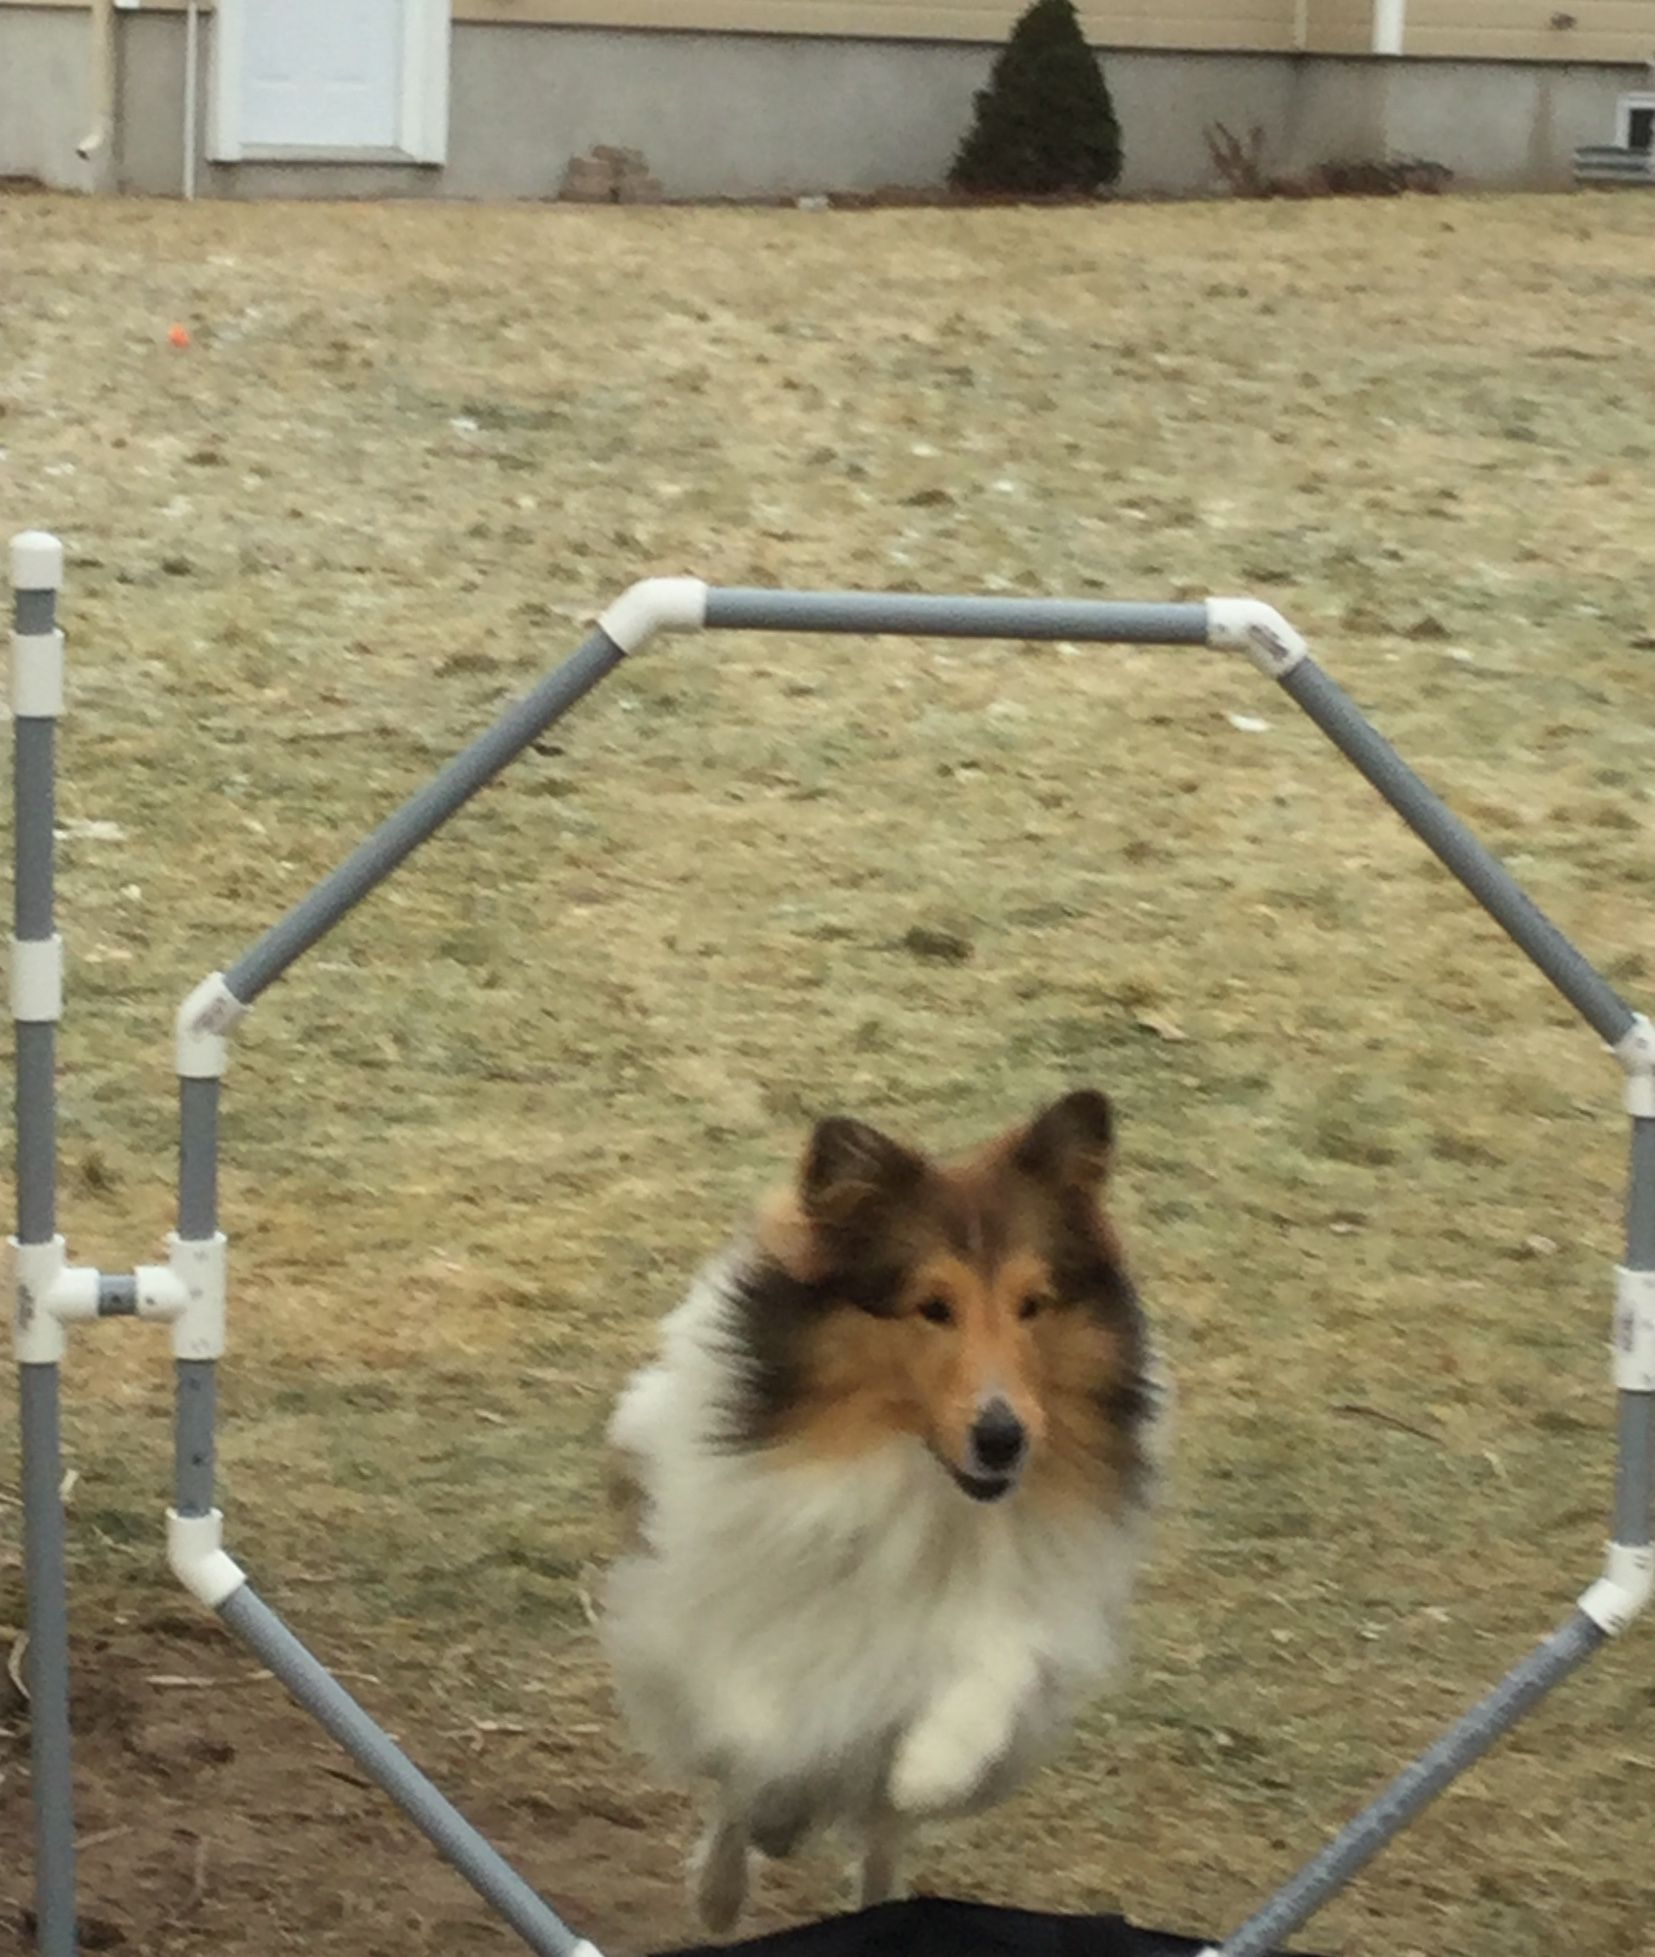 Homemade Agility Hoop Jump And Weaving Poles That I Got For